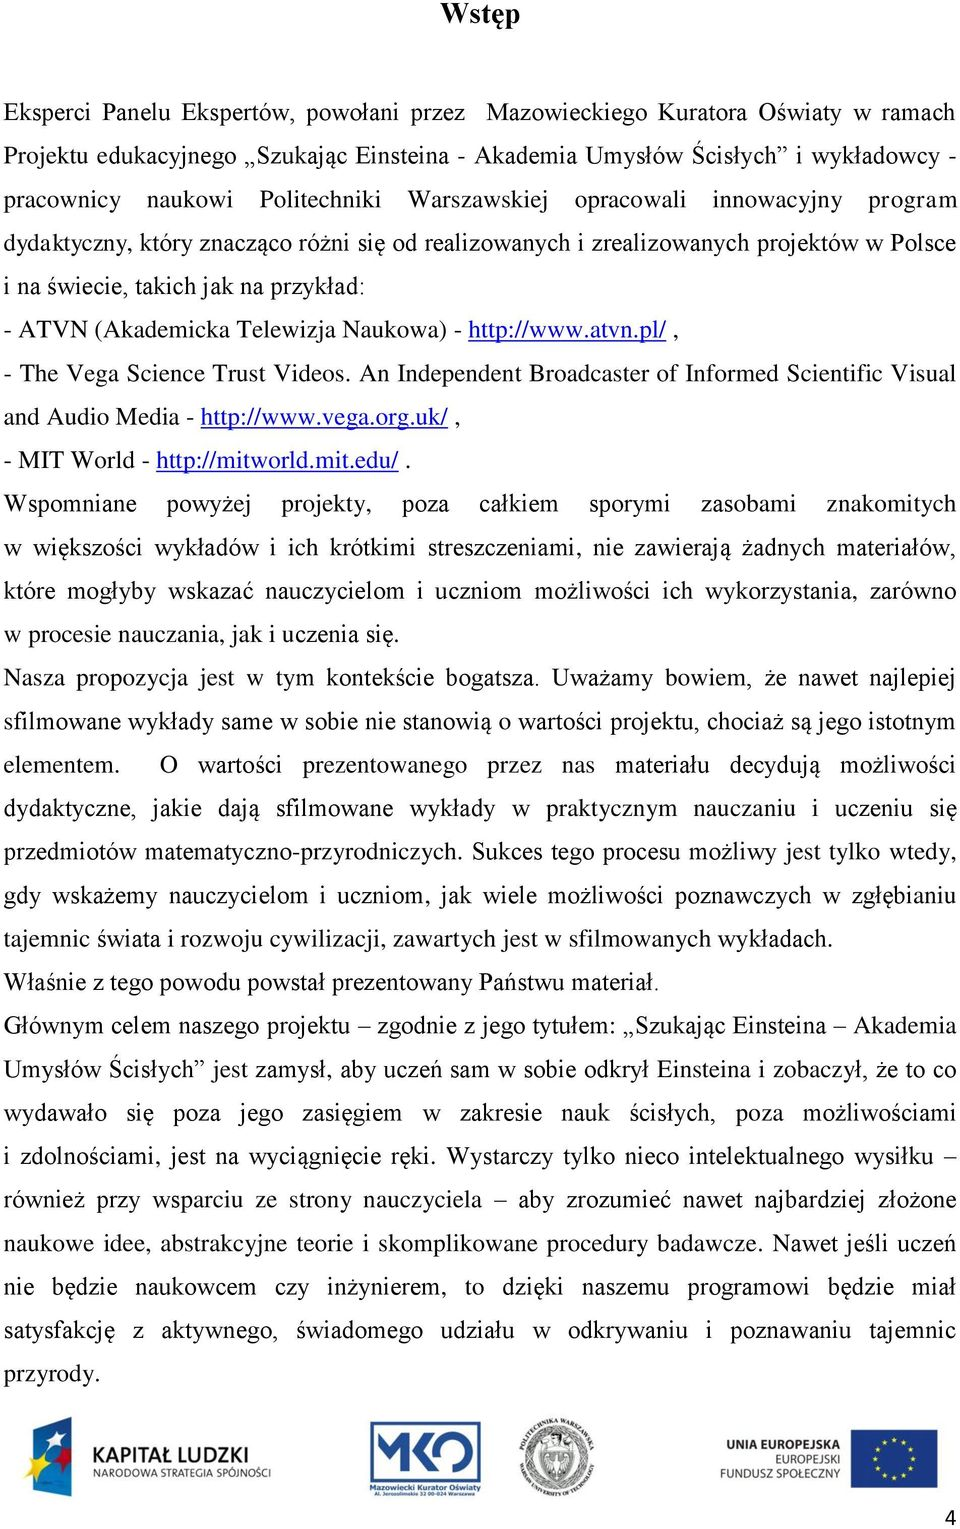 (Akademicka Telewizja Naukowa) - http://www.atvn.pl/, - The Vega Science Trust Videos. An Independent Broadcaster of Informed Scientific Visual and Audio Media - http://www.vega.org.